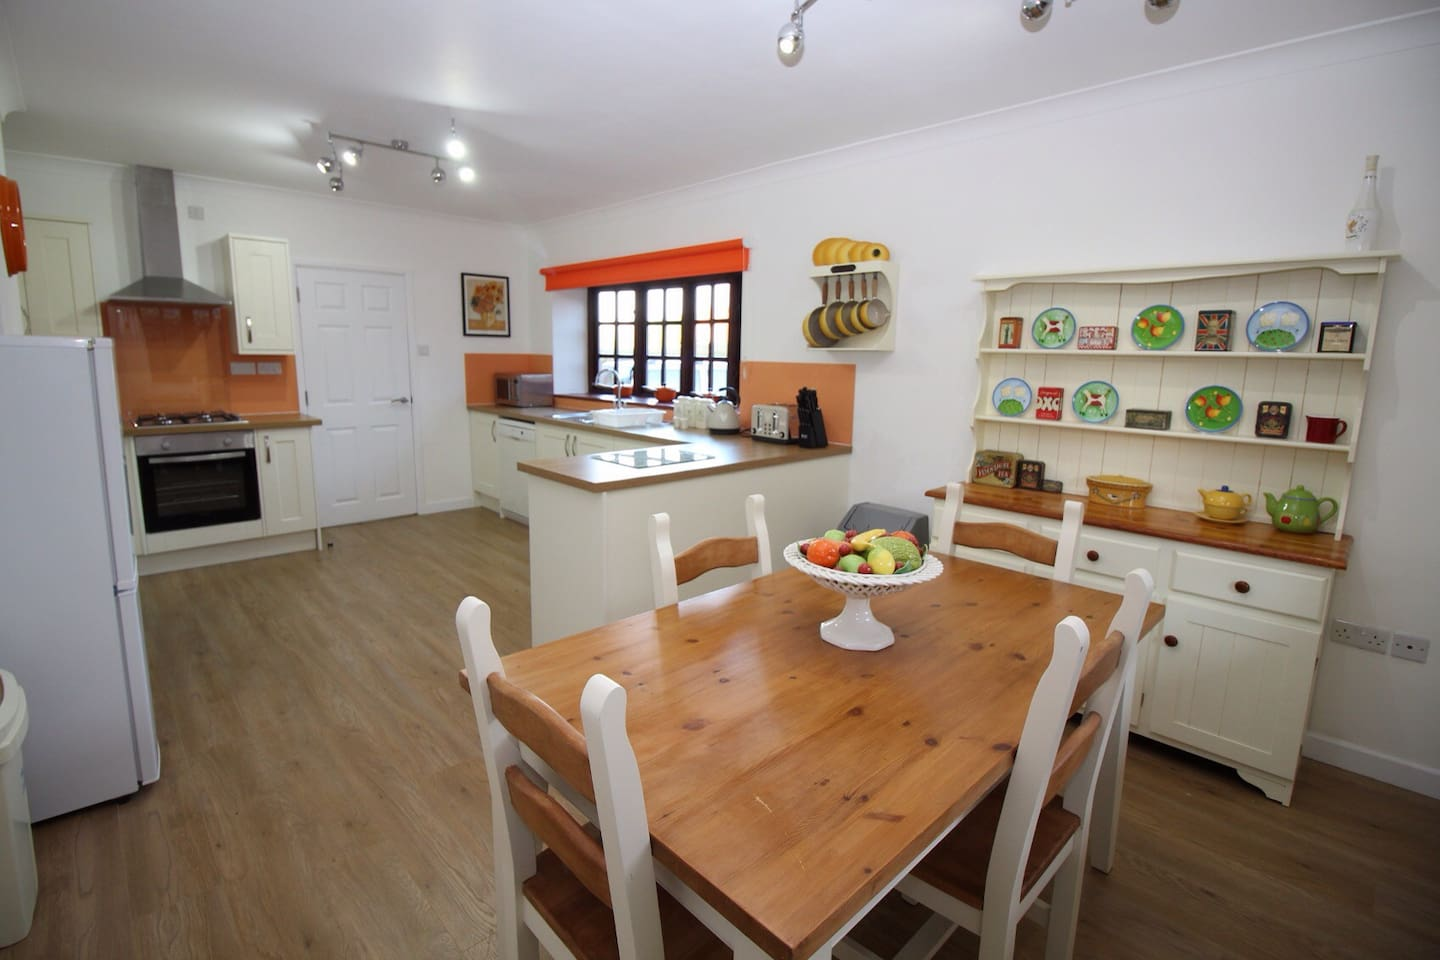 Spacious kitchen diner with gas hob, electric oven, dishwasher, microwave, fridge freezer, kettle, toaster and a feature fireplace. There is also a utility room leading from the kitchen with a washing machine, iron/ironing board and a further sink. If required we can also provide a baby's high chair. On arrival we will ensure there are some basic supplies ready for you, including milk, bread, eggs, butter, orange juice, tea, coffee and sugar.